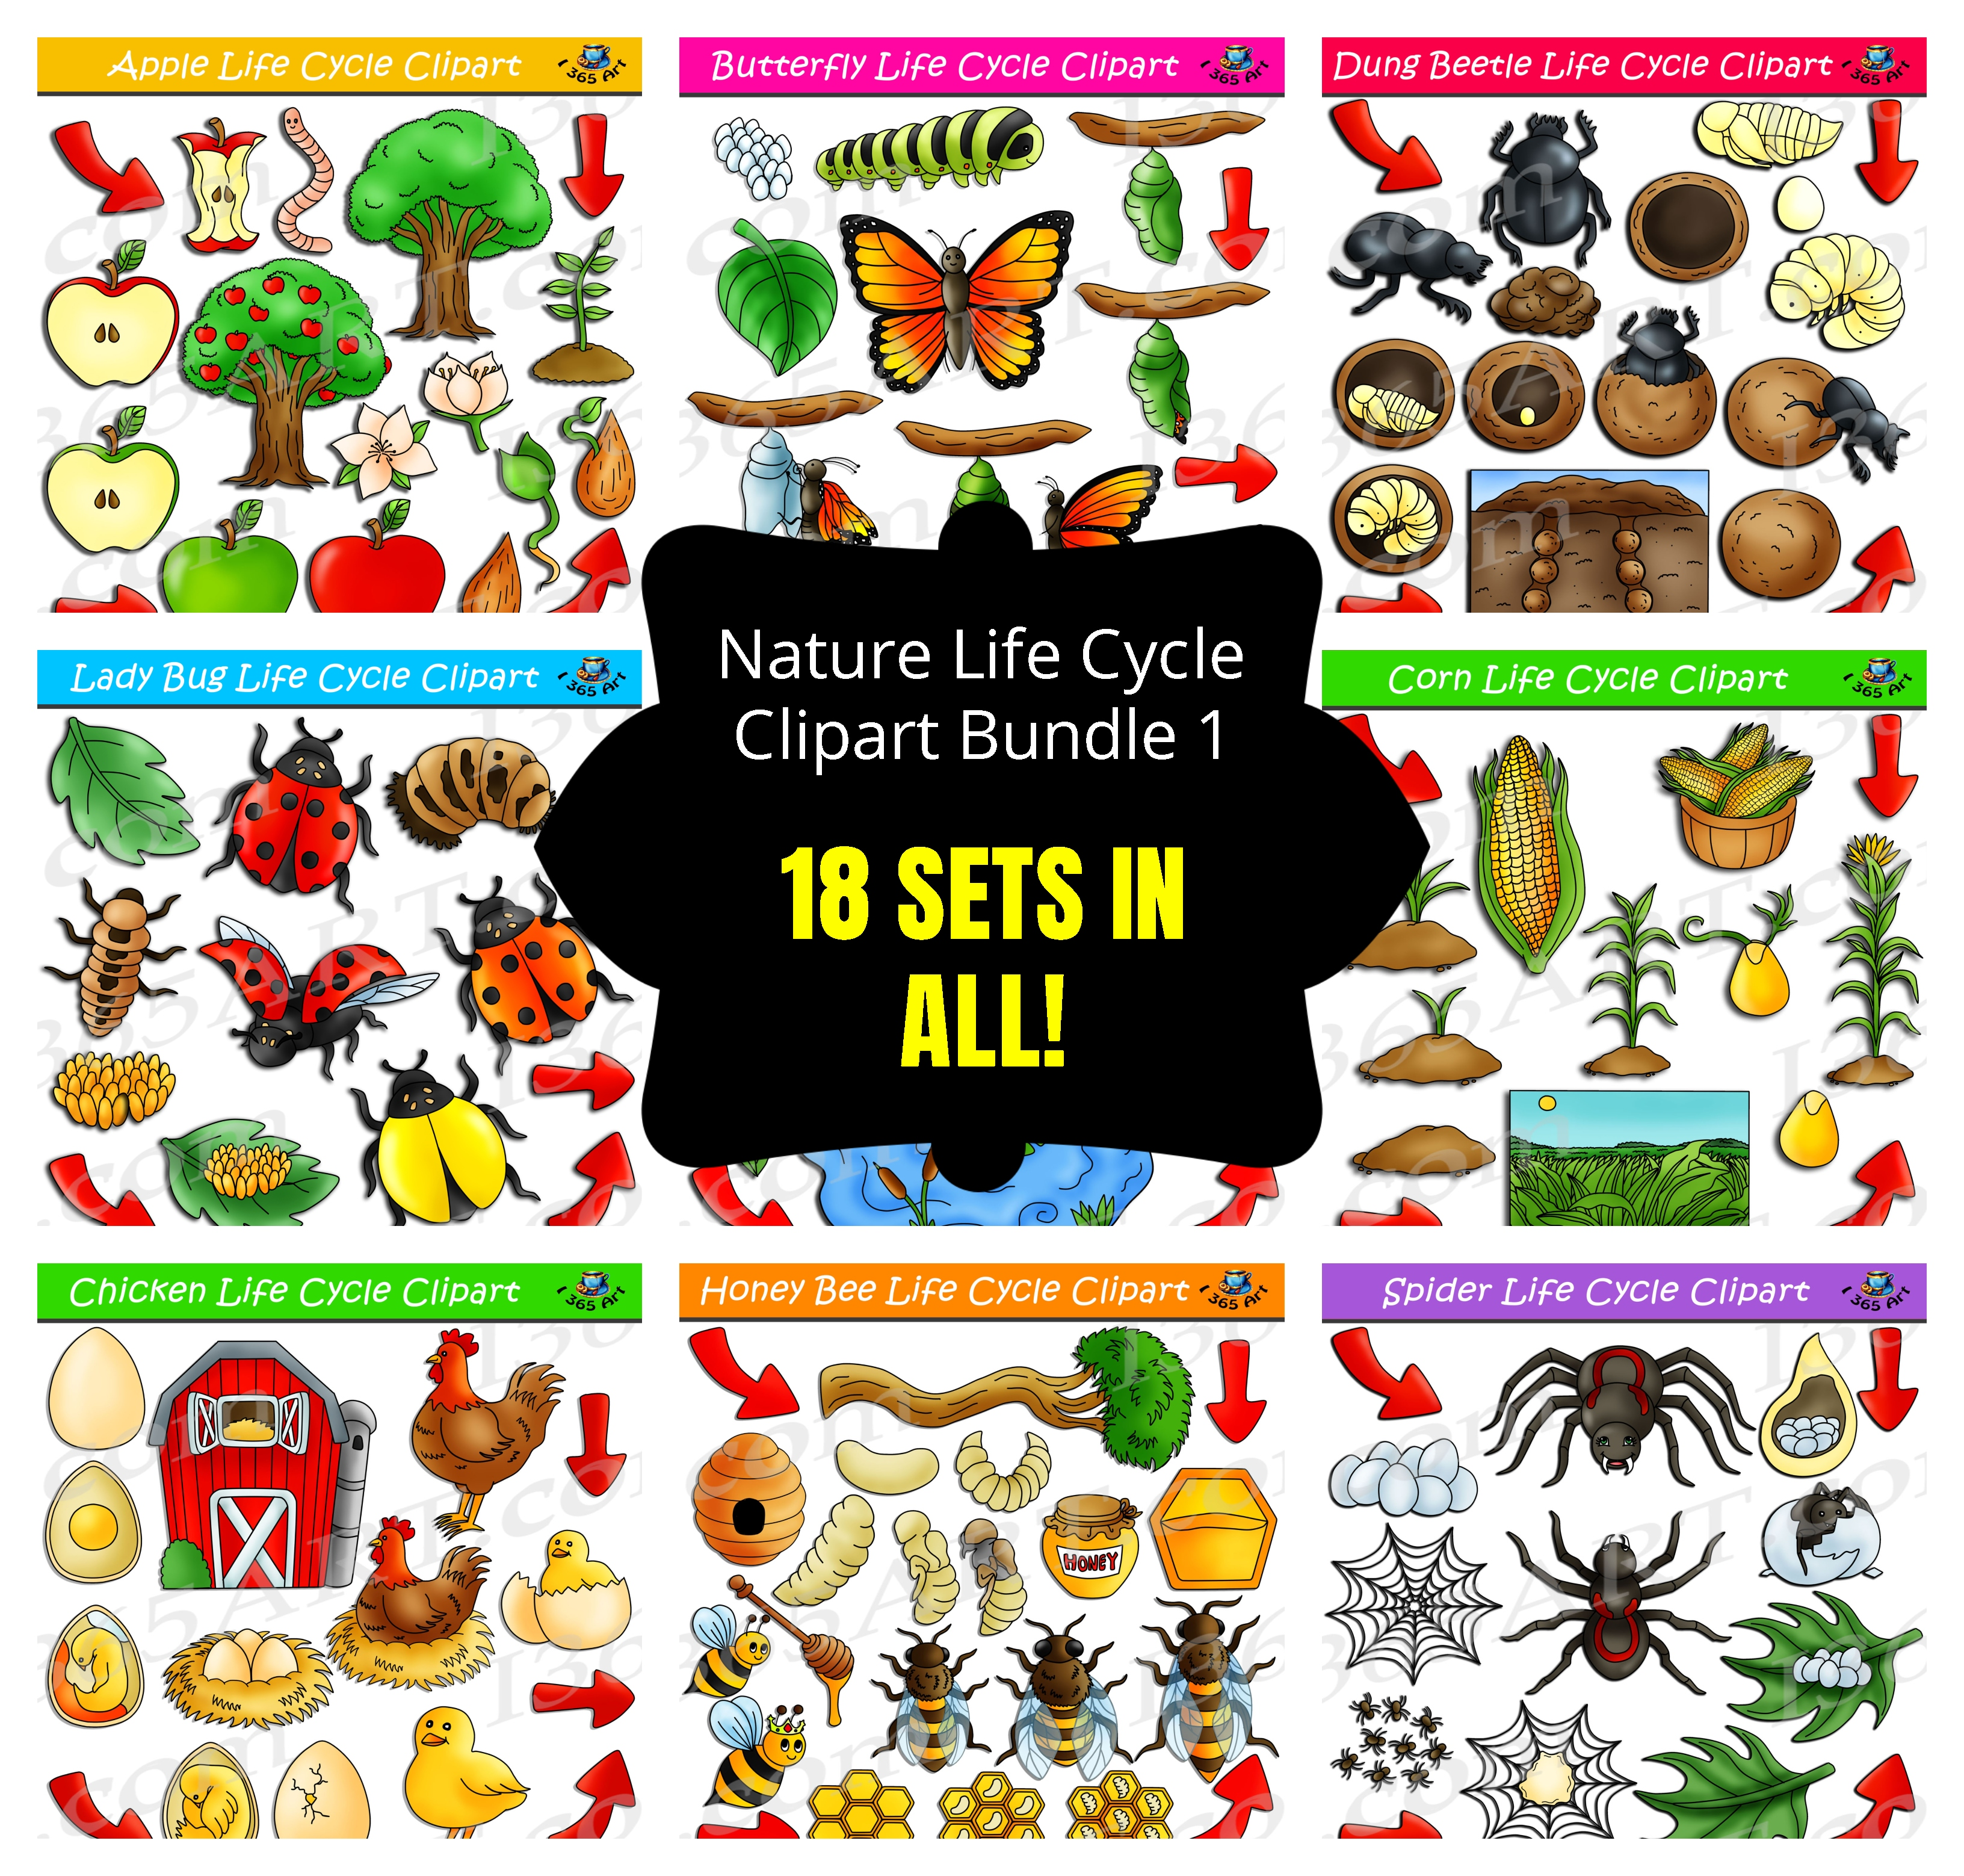 Nature Life Cycle Clipart Bundle #1.